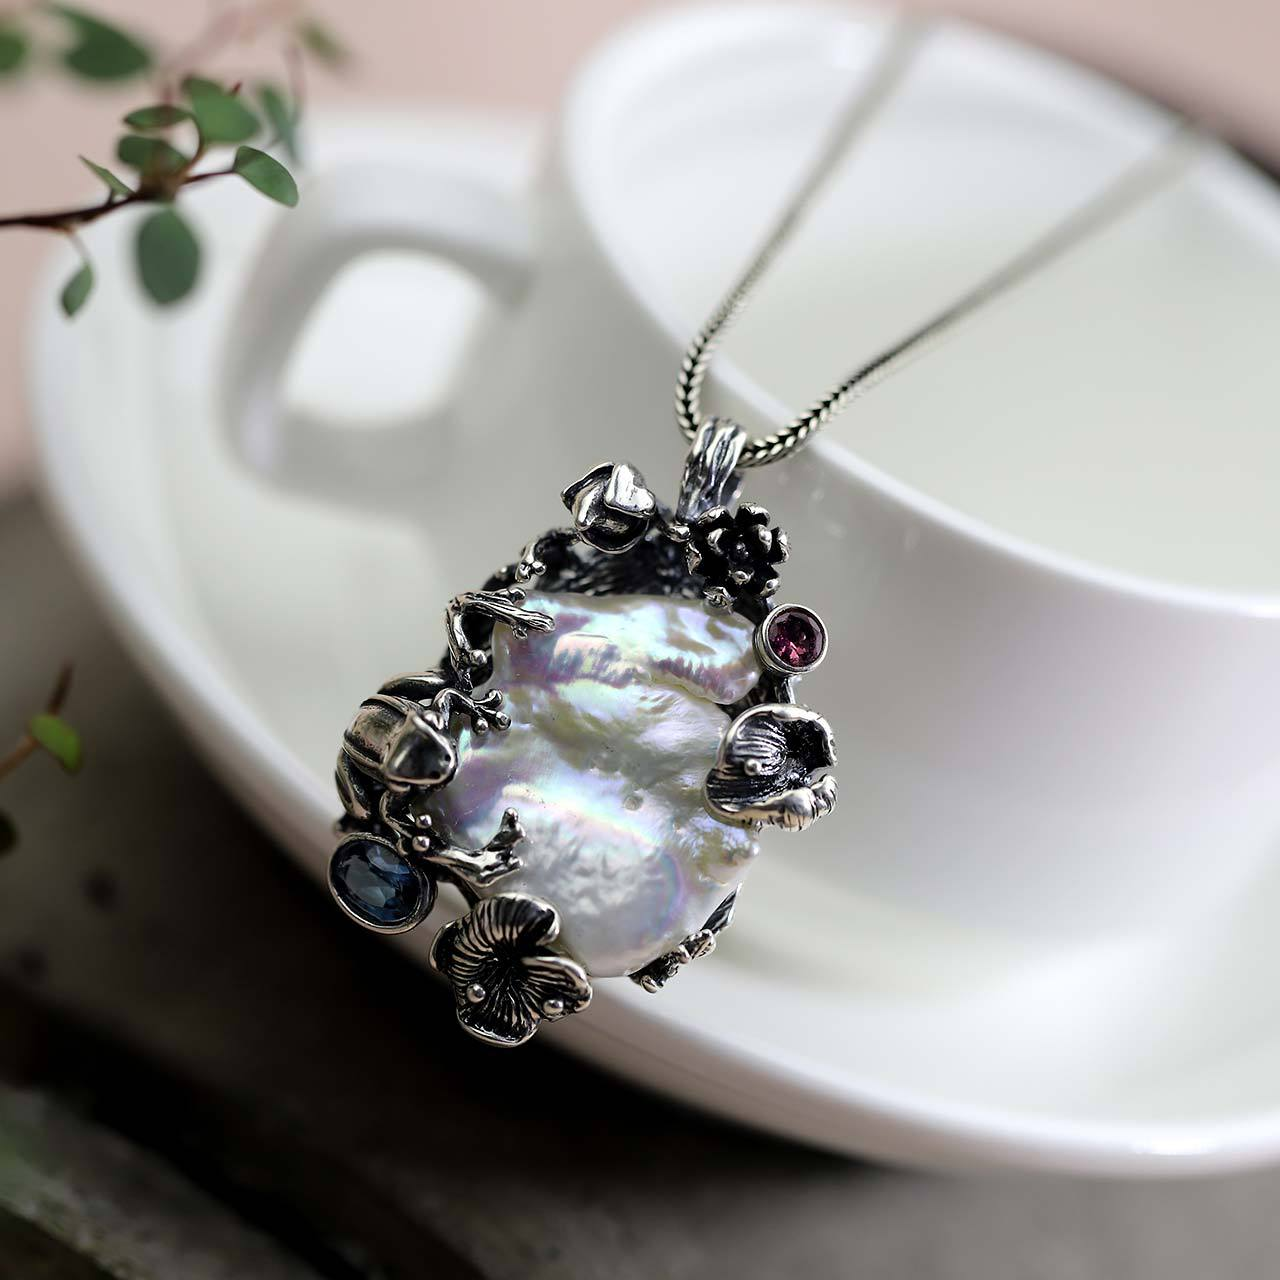 S925, pure silver jewelry, Thai silver, hand-made lady accessories, new pearl pendant.S925, pure silver jewelry, Thai silver, hand-made lady accessories, new pearl pendant.